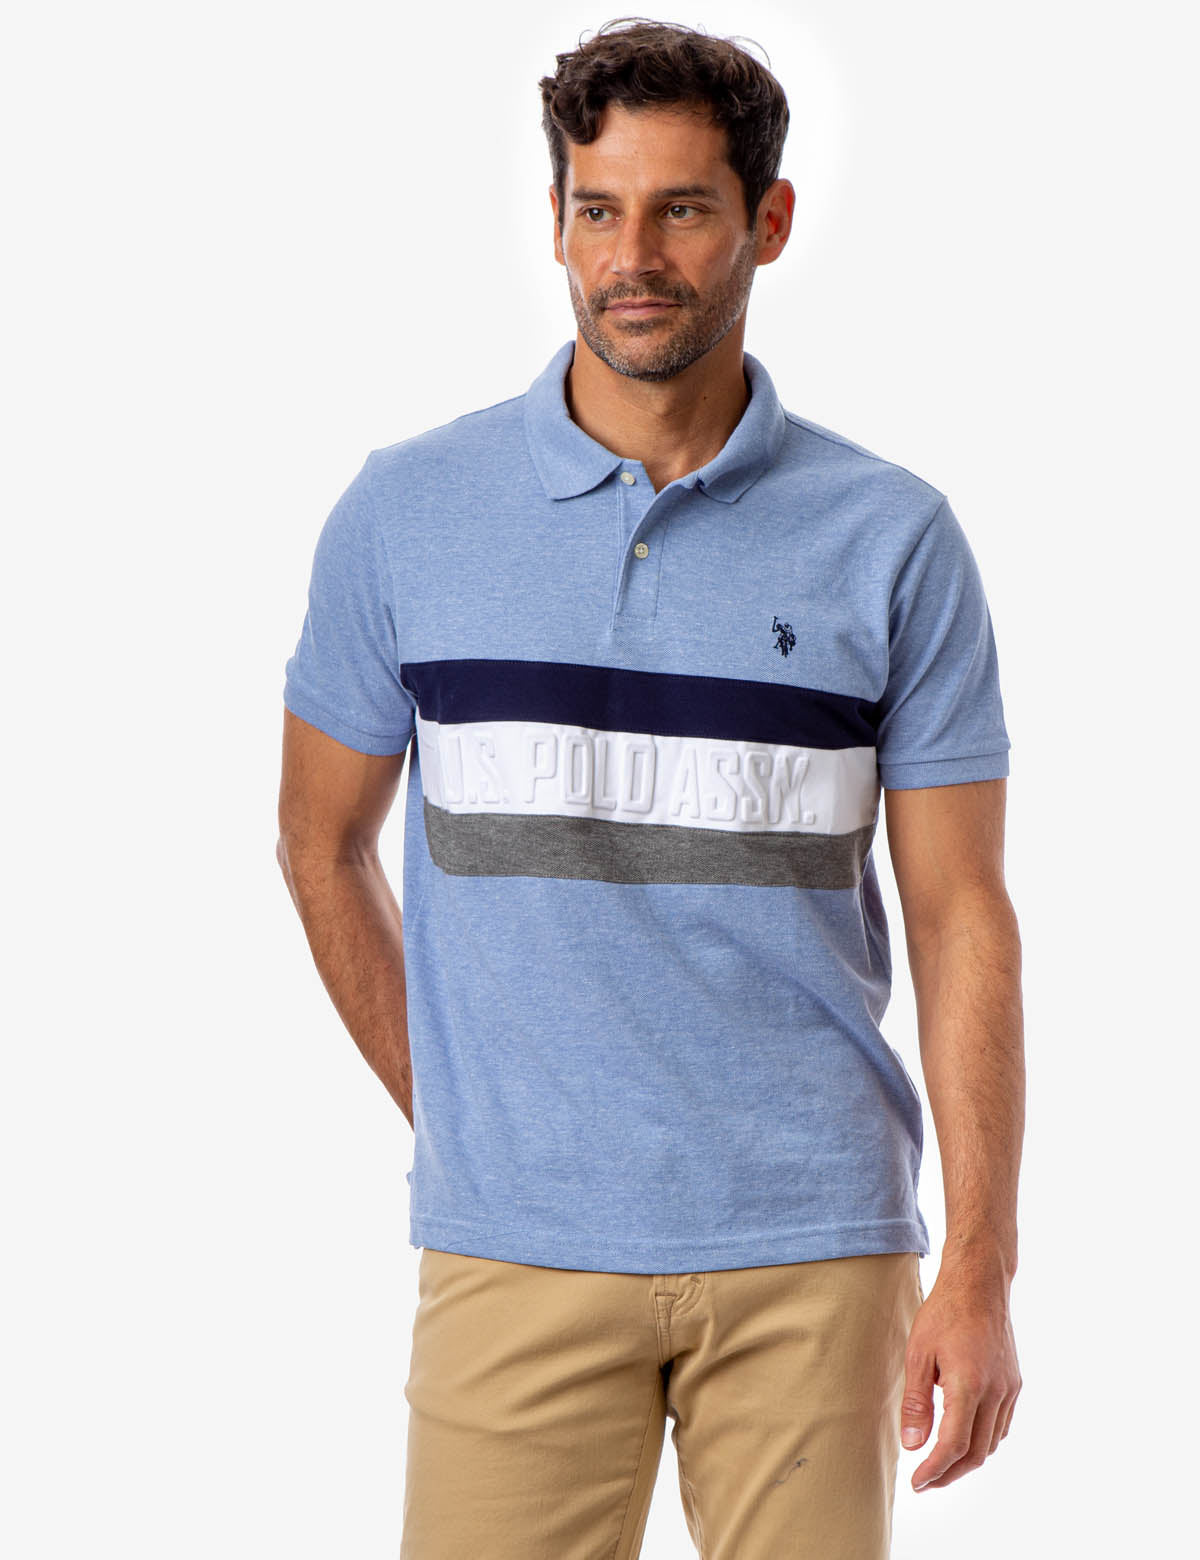 EMBOSSED U.S. POLO ASSOCIATION CHEST STRIPE POLO SHIRT - U.S. Polo Assn.